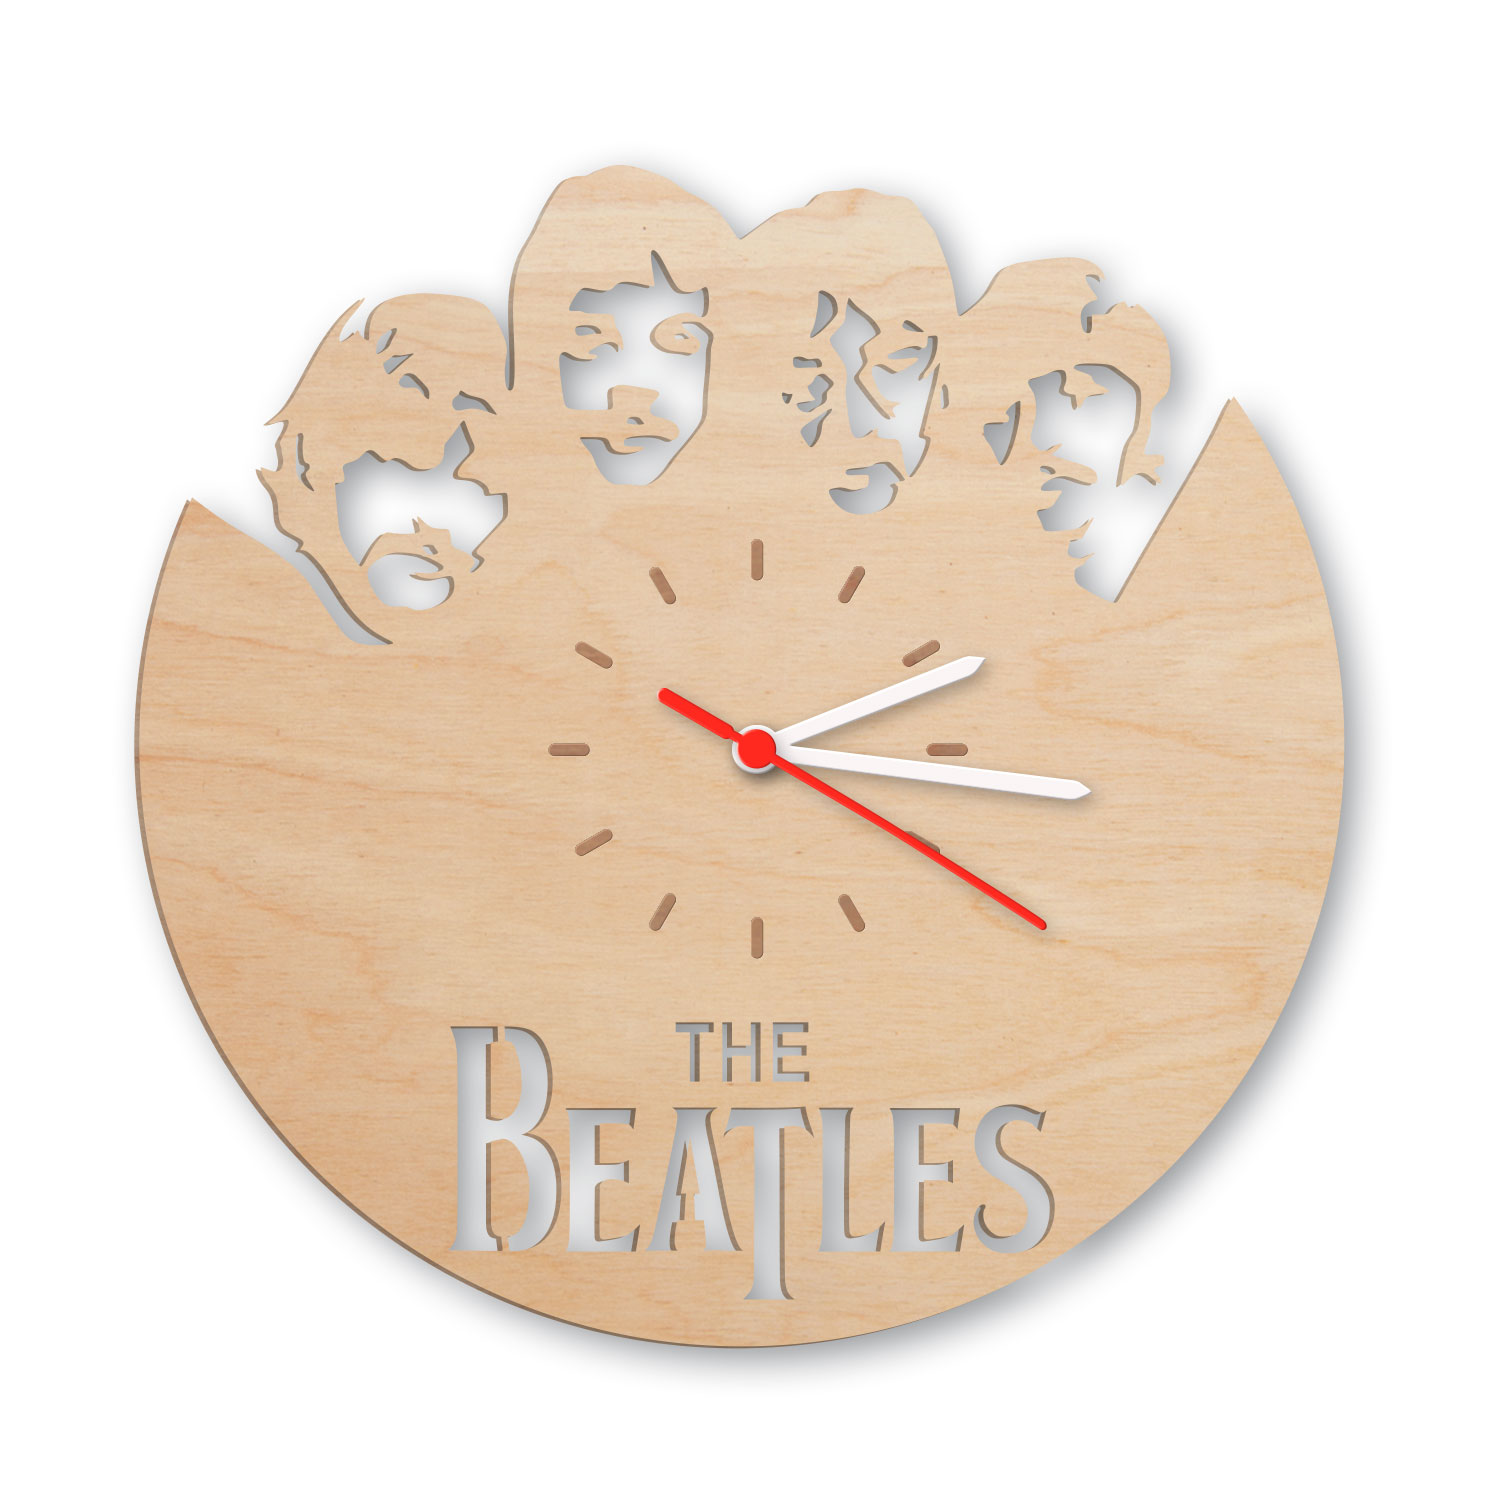 wanduhr aus holz the beatles. Black Bedroom Furniture Sets. Home Design Ideas